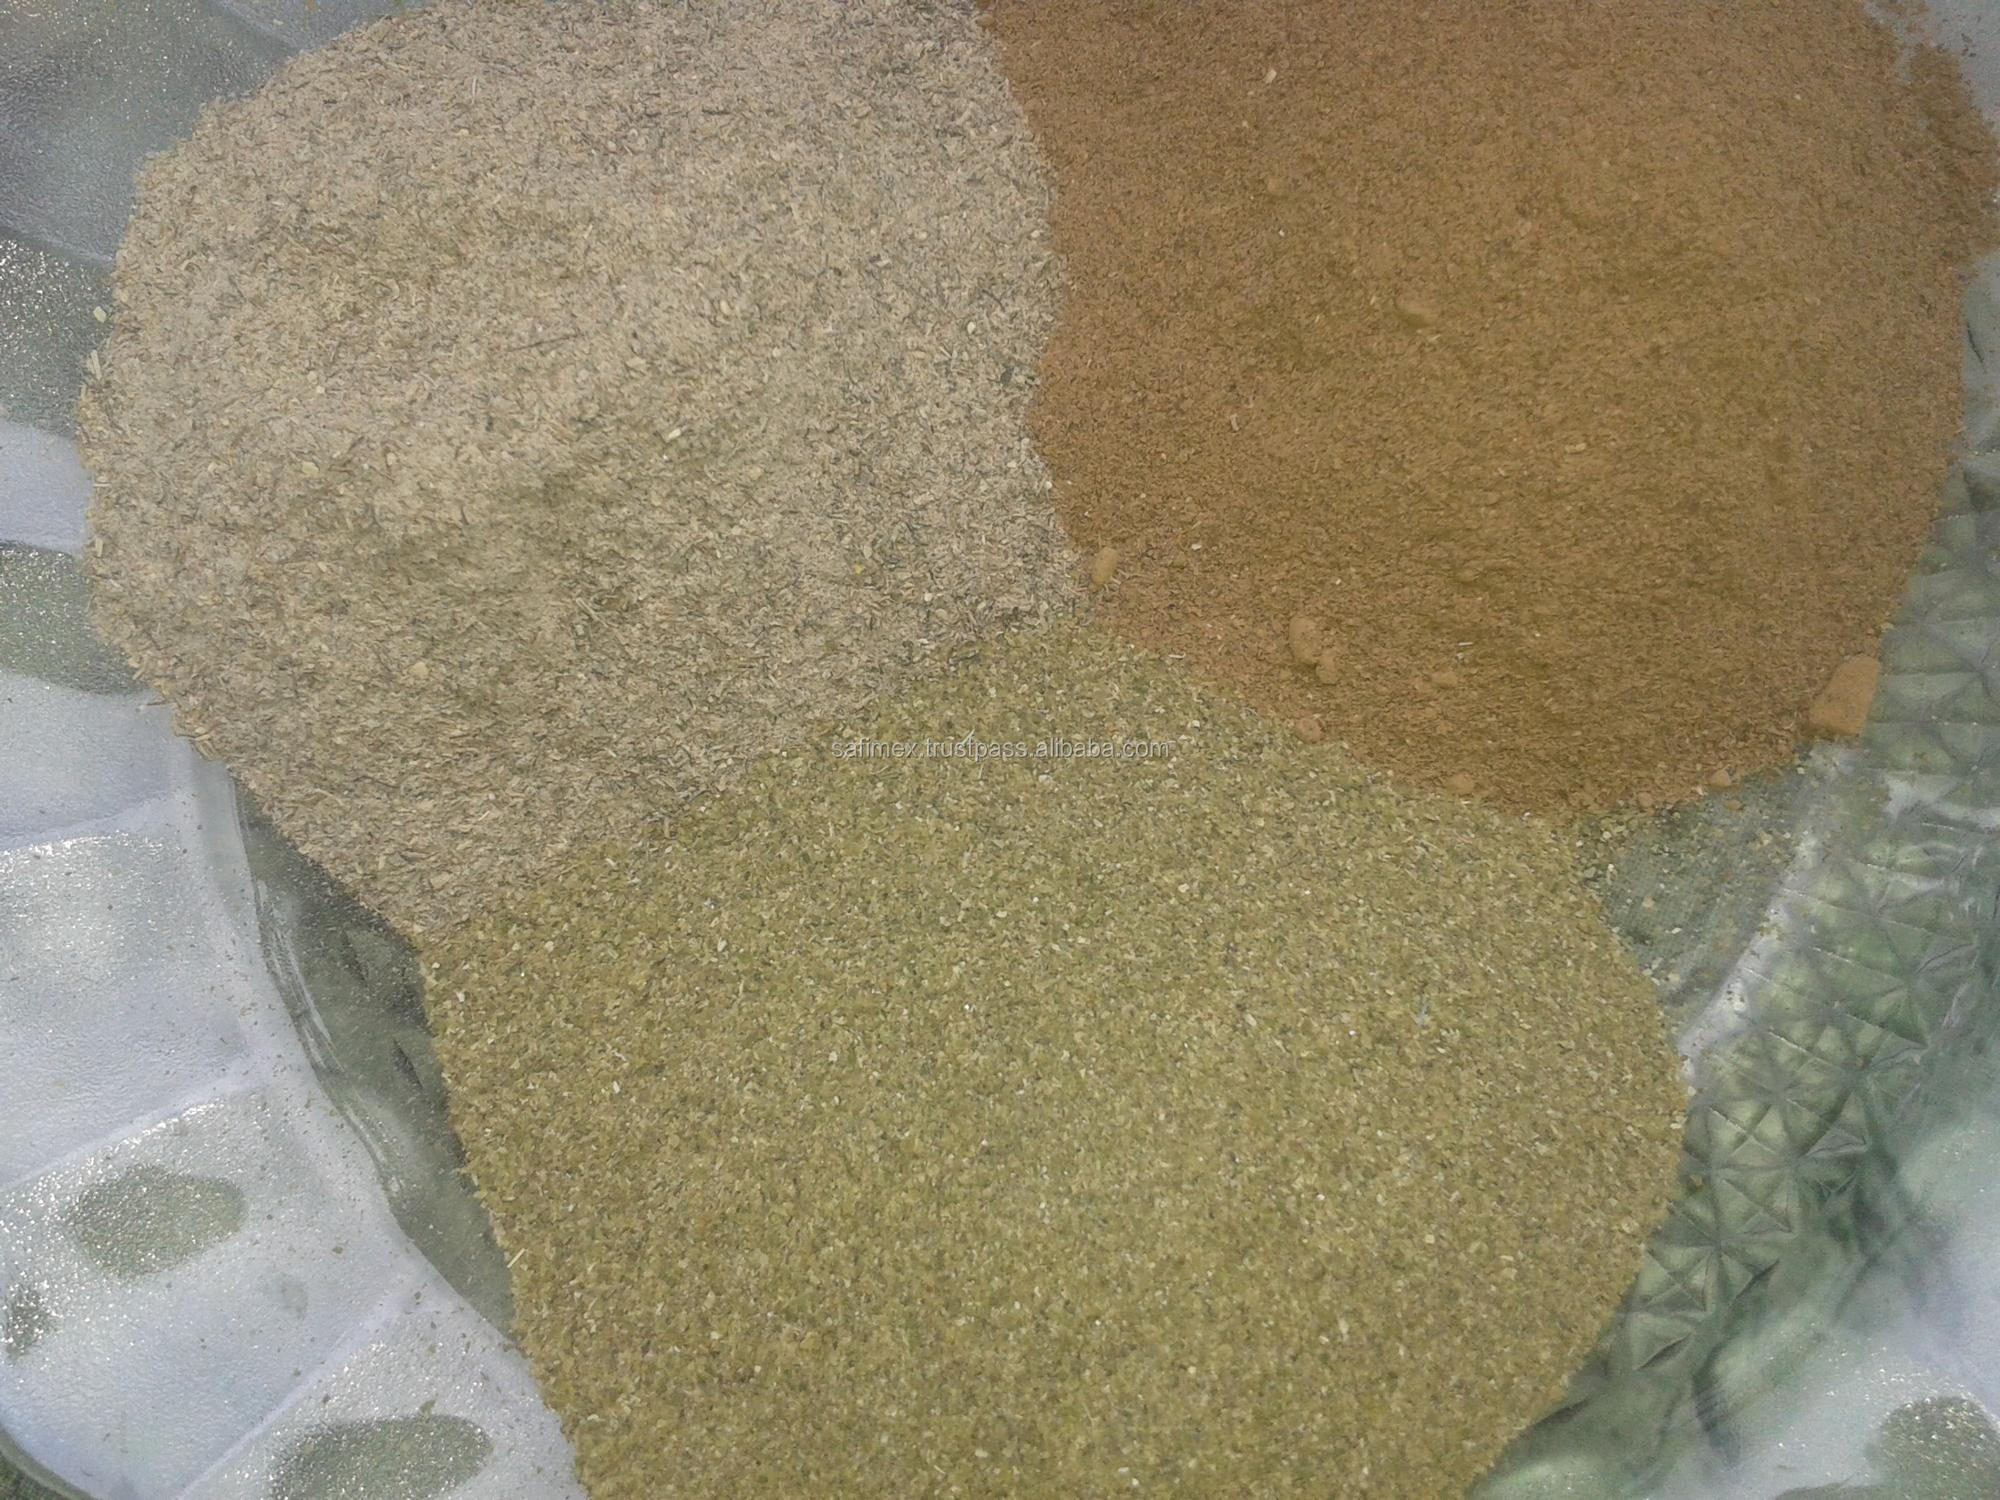 dried sargassum for stock feed